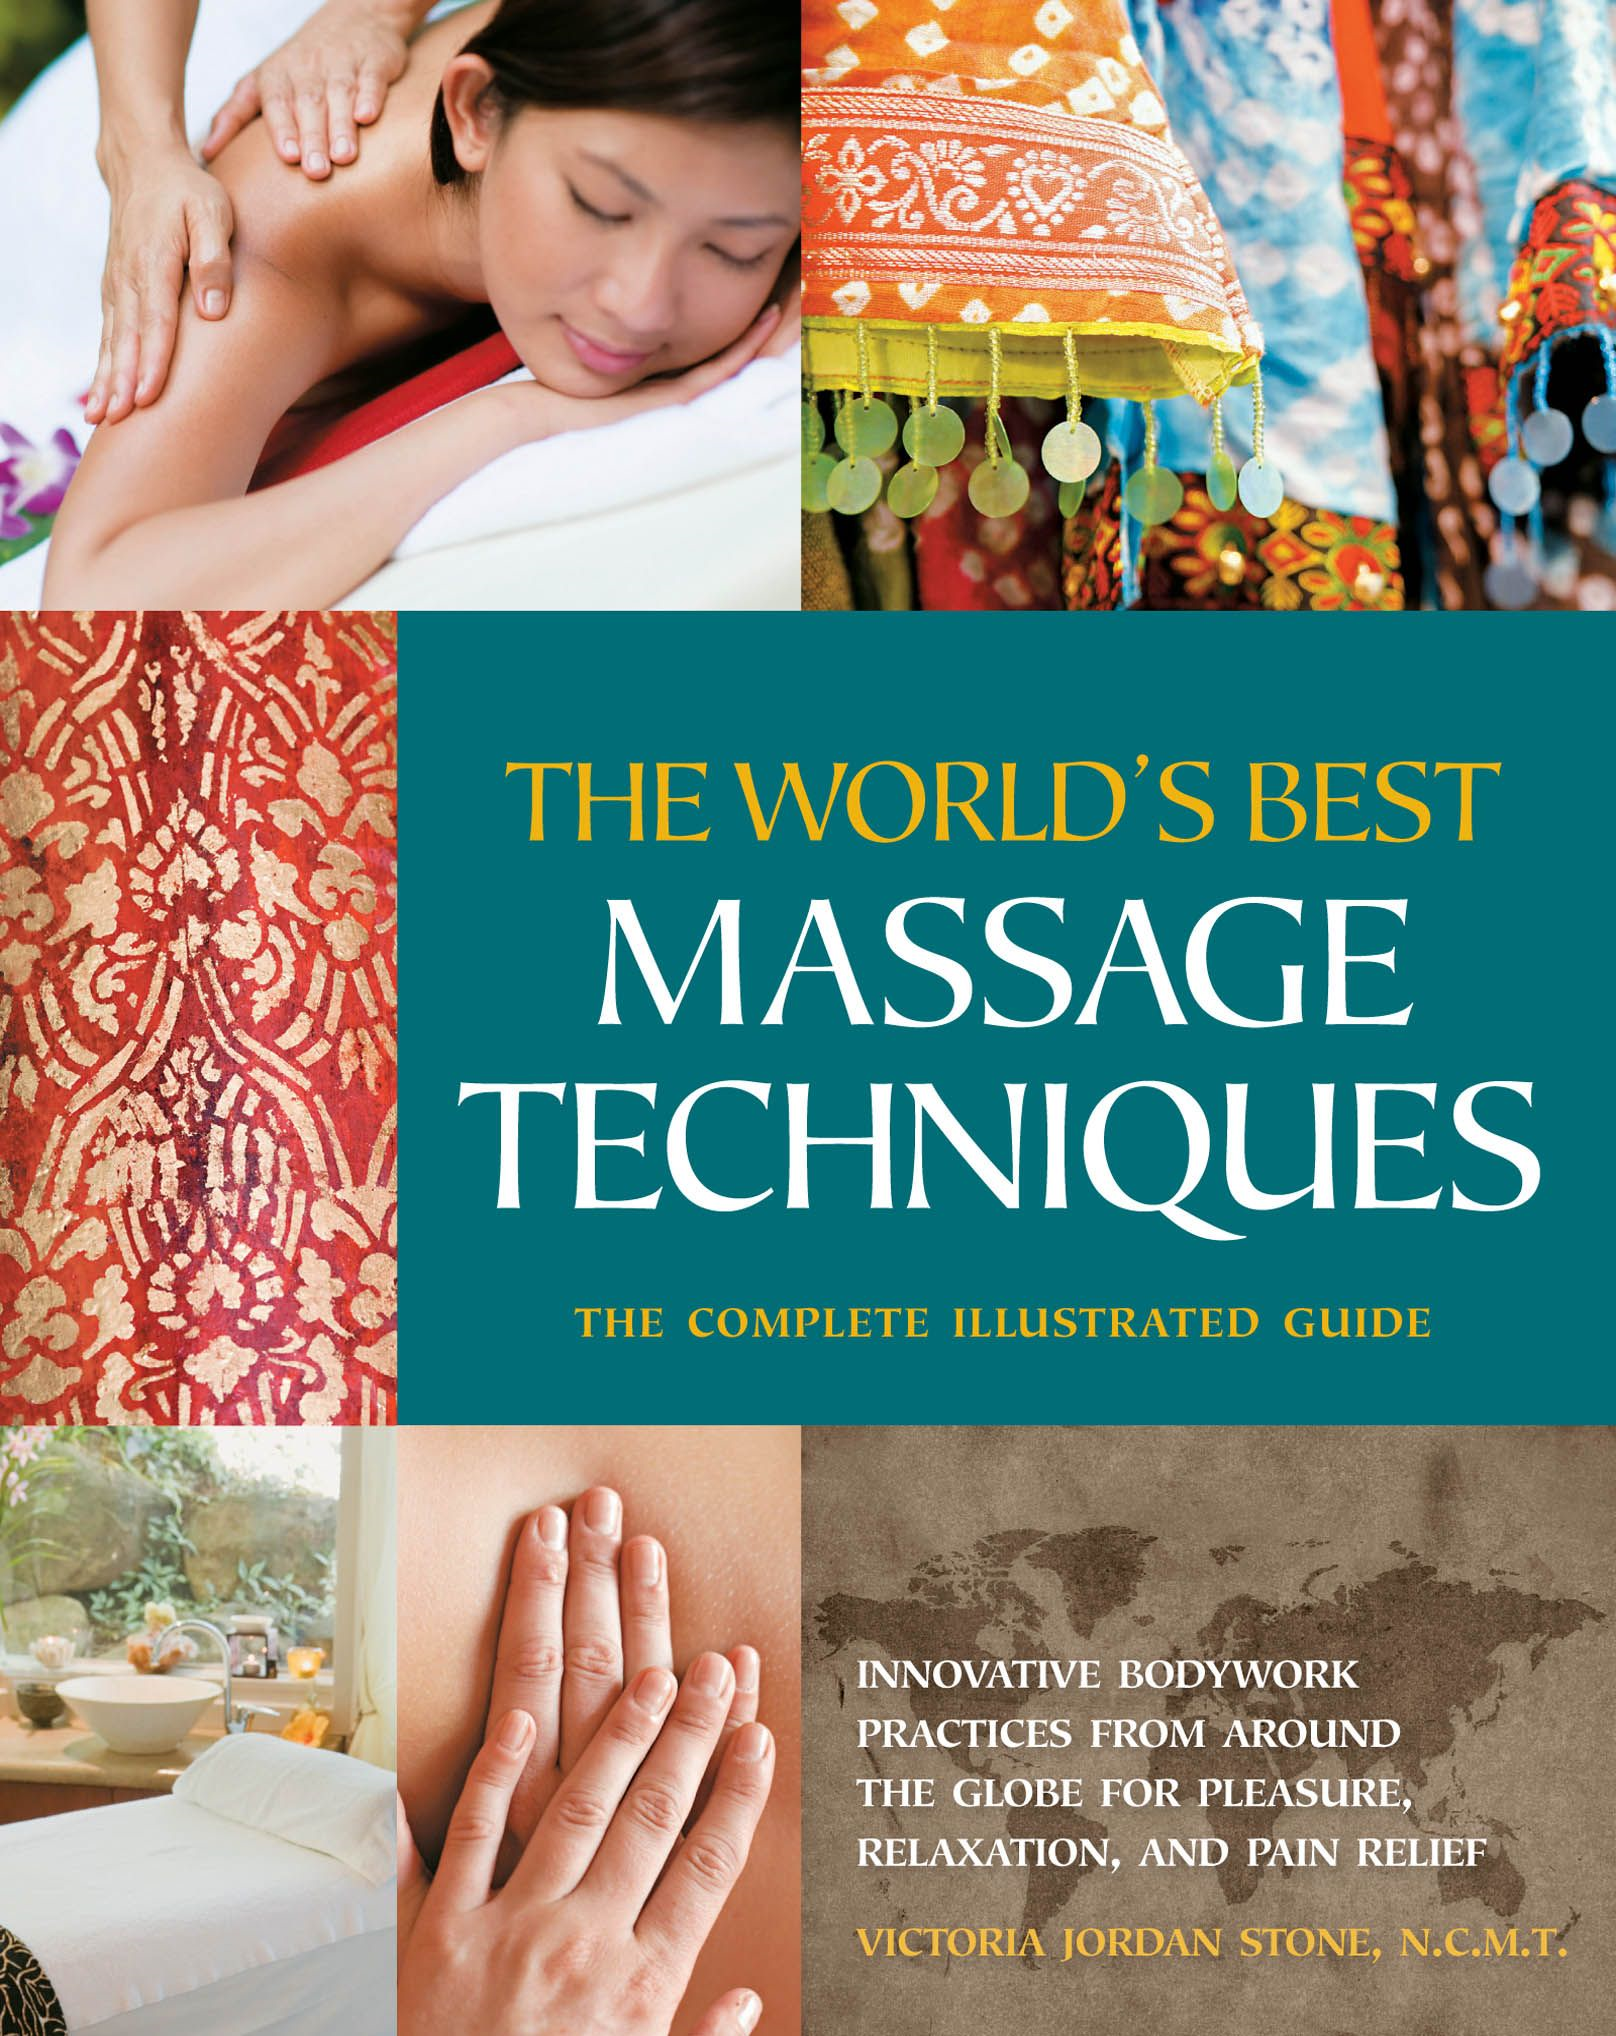 The The World's Best Massage Techniques The Complete Illustrated Guide: Innovative Bodywork Practices From Around the Globe for Pleasure, Relaxation, and Pain Relief